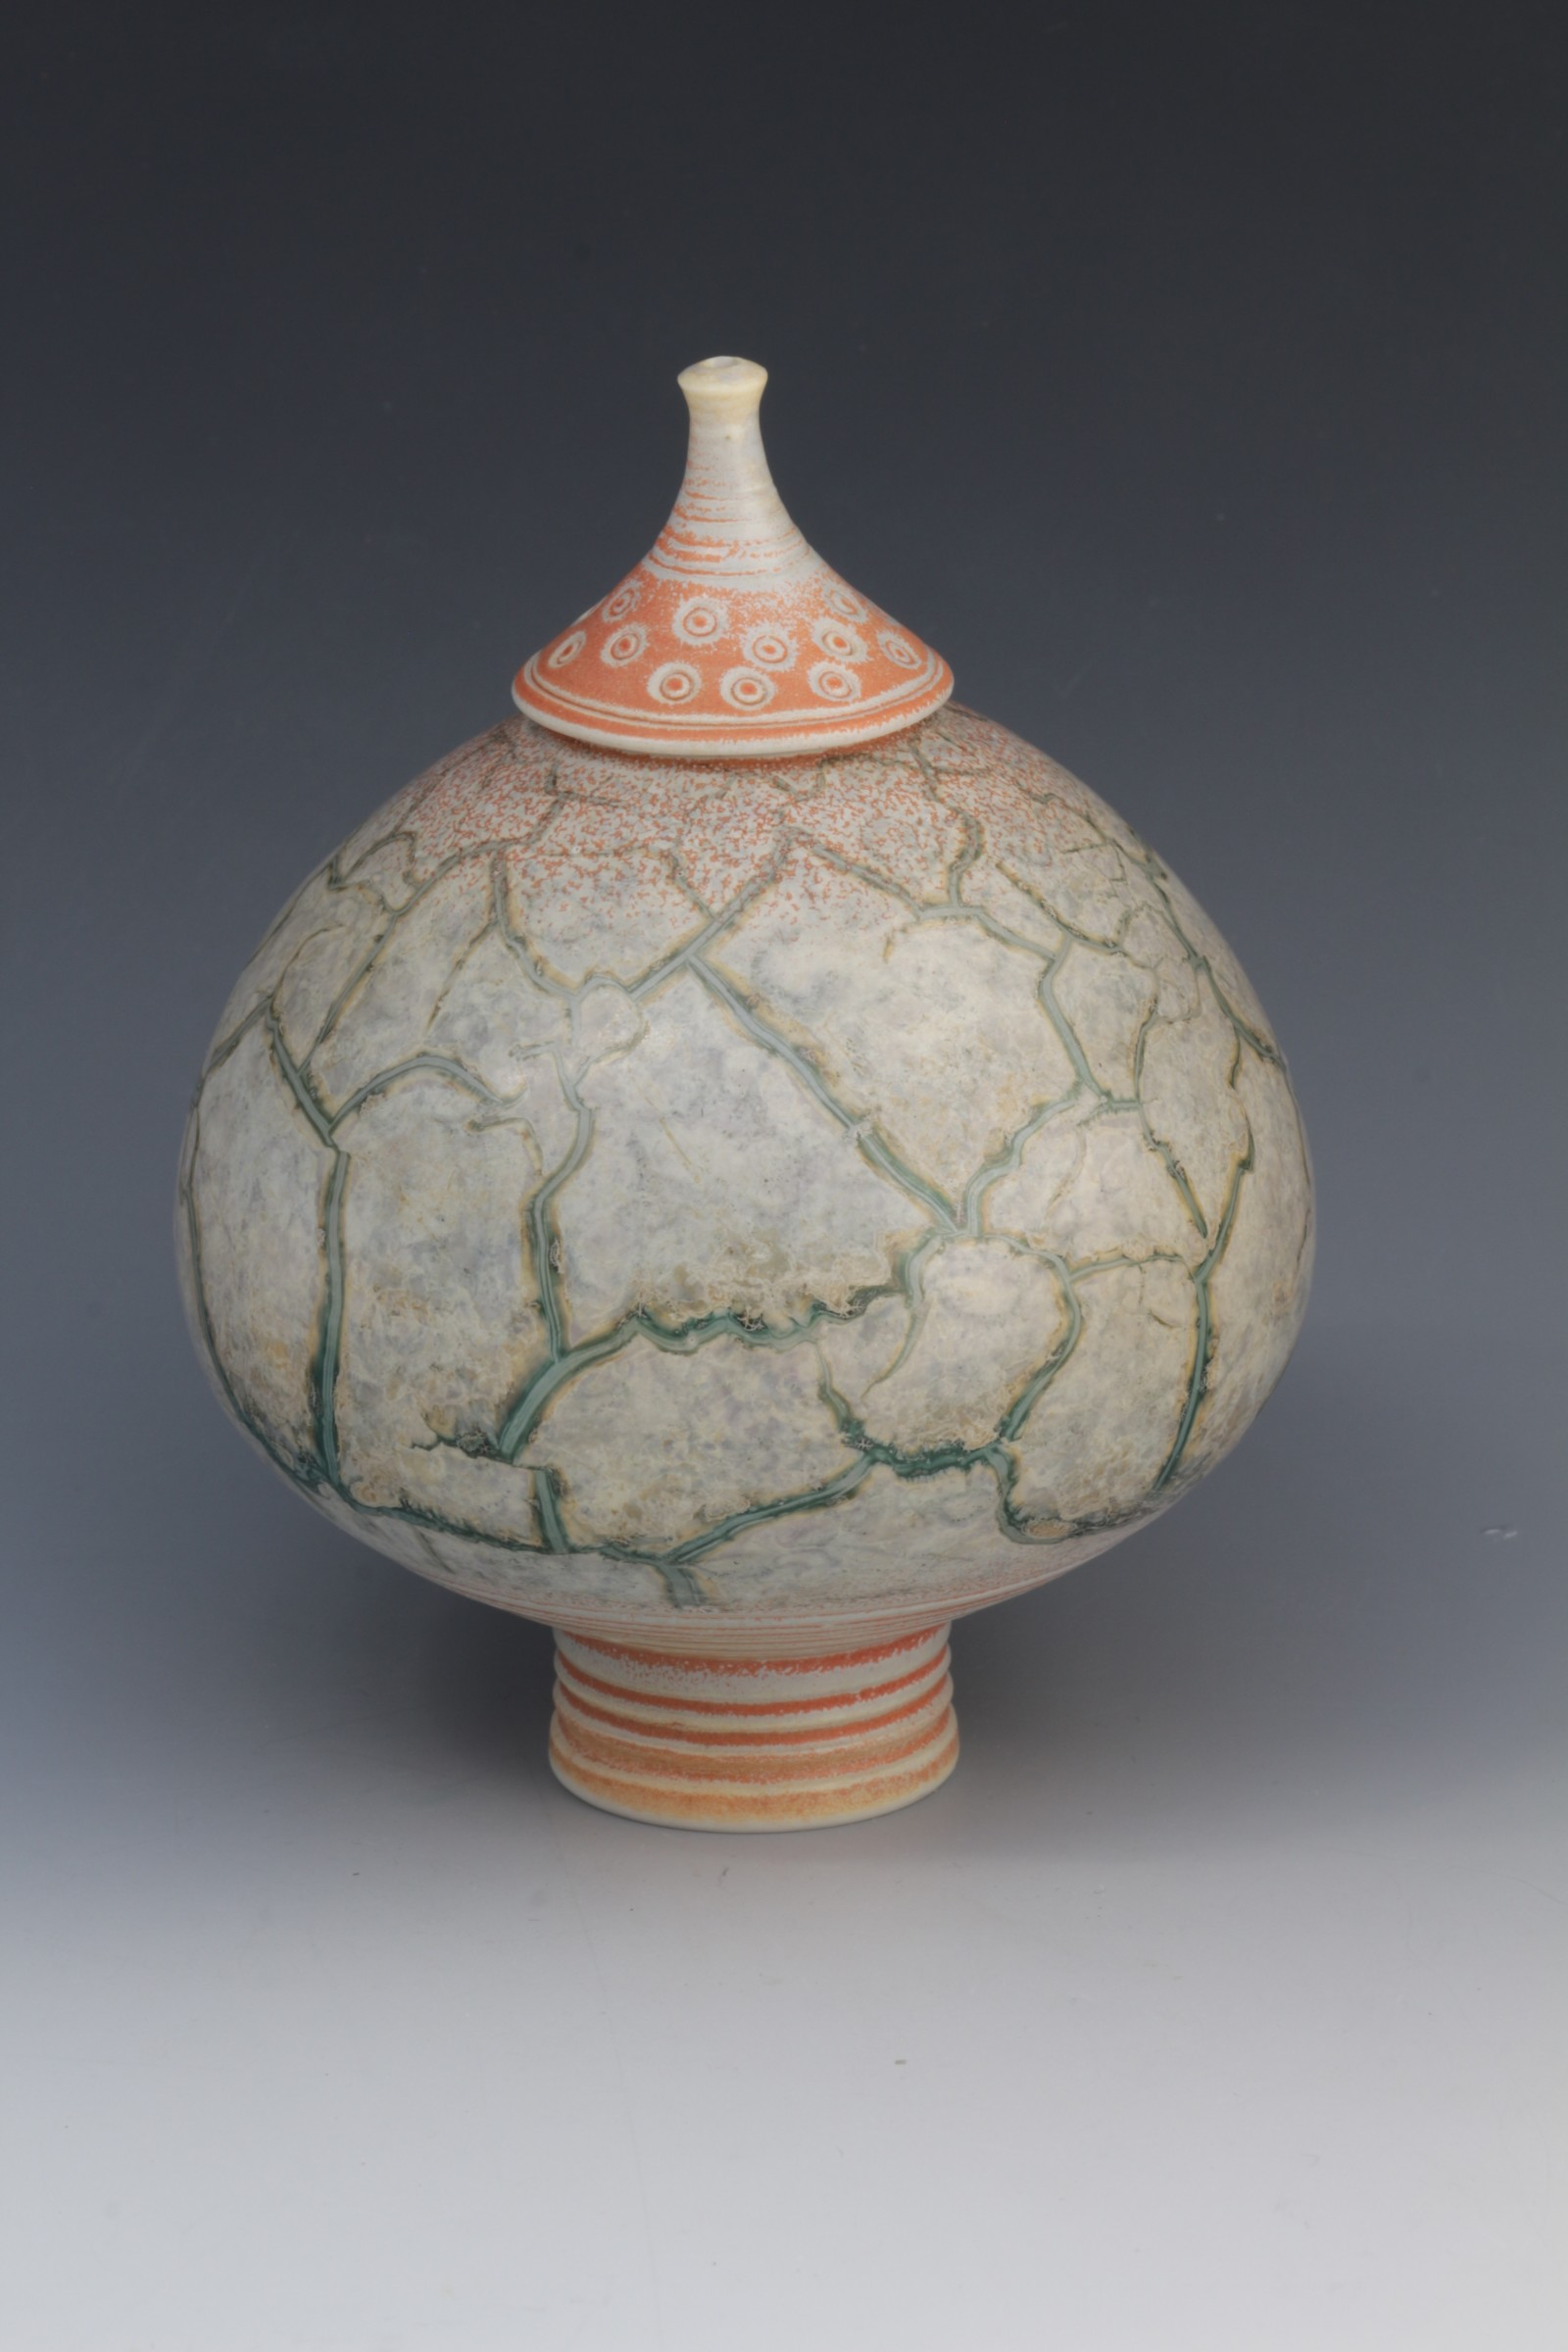 "<span class=""link fancybox-details-link""><a href=""/artists/61-geoffrey-swindell/works/6415-geoffrey-swindell-lidded-pot/"">View Detail Page</a></span><div class=""artist""><strong>Geoffrey Swindell</strong></div> <div class=""title""><em>Lidded Pot</em></div> <div class=""copyright_line"">Ownart £17.50 x 10 Months 0% APR</div>"